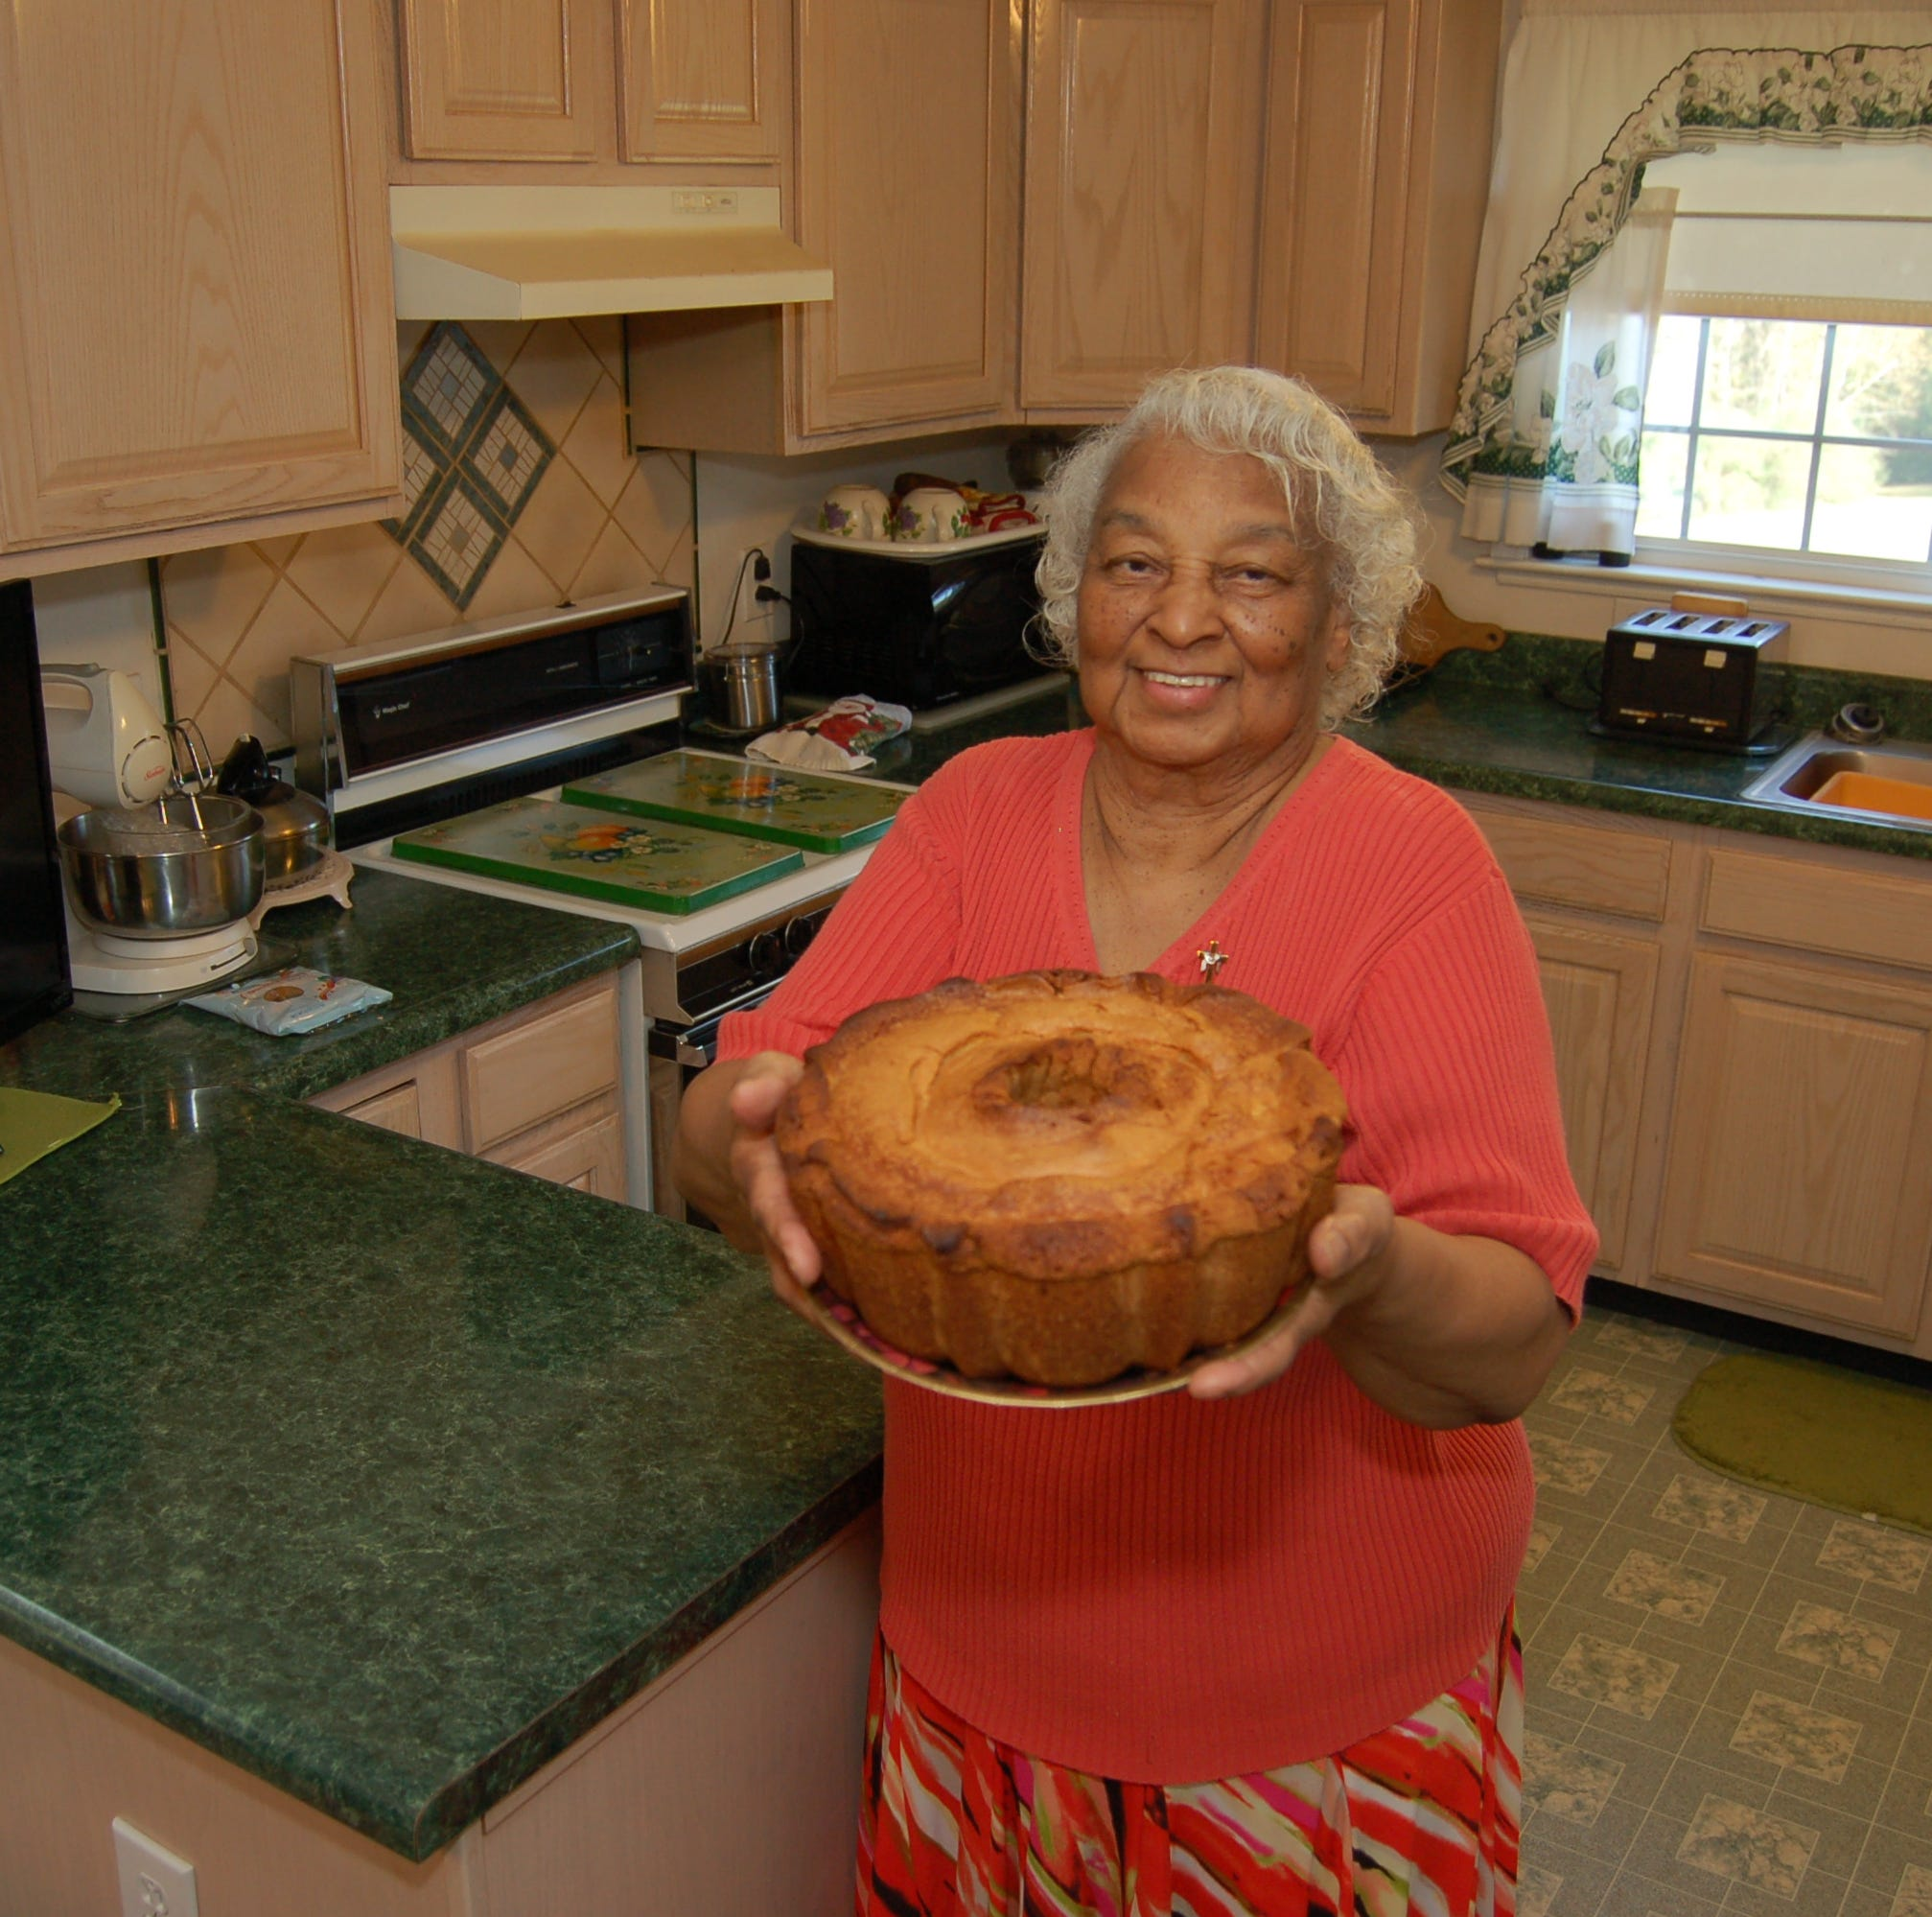 At 82, she's still baking pound cake for a good cause